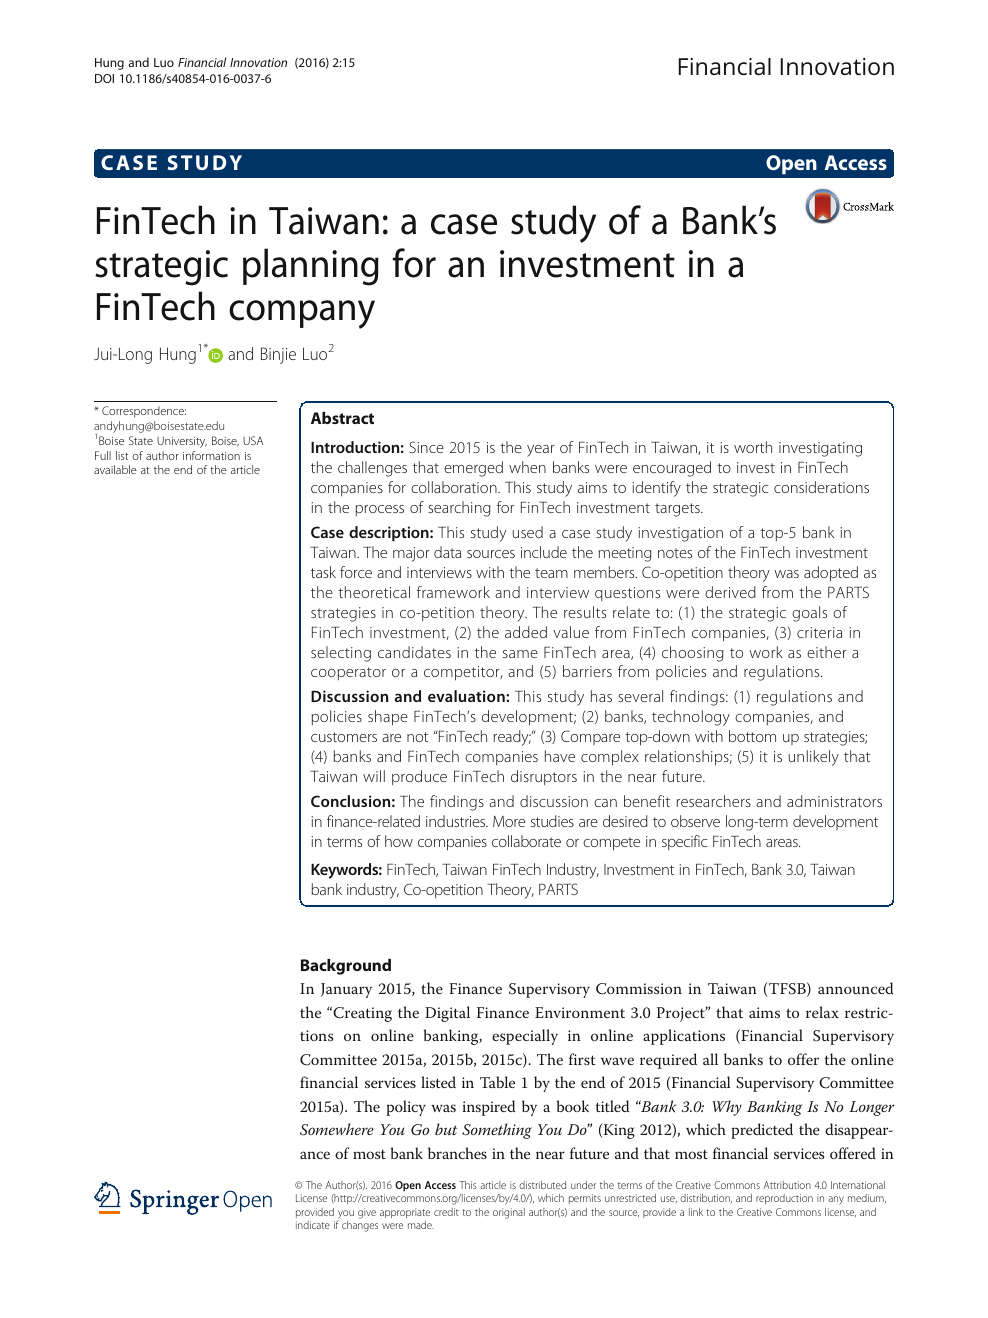 FinTech in Taiwan: a case study of a Bank's strategic